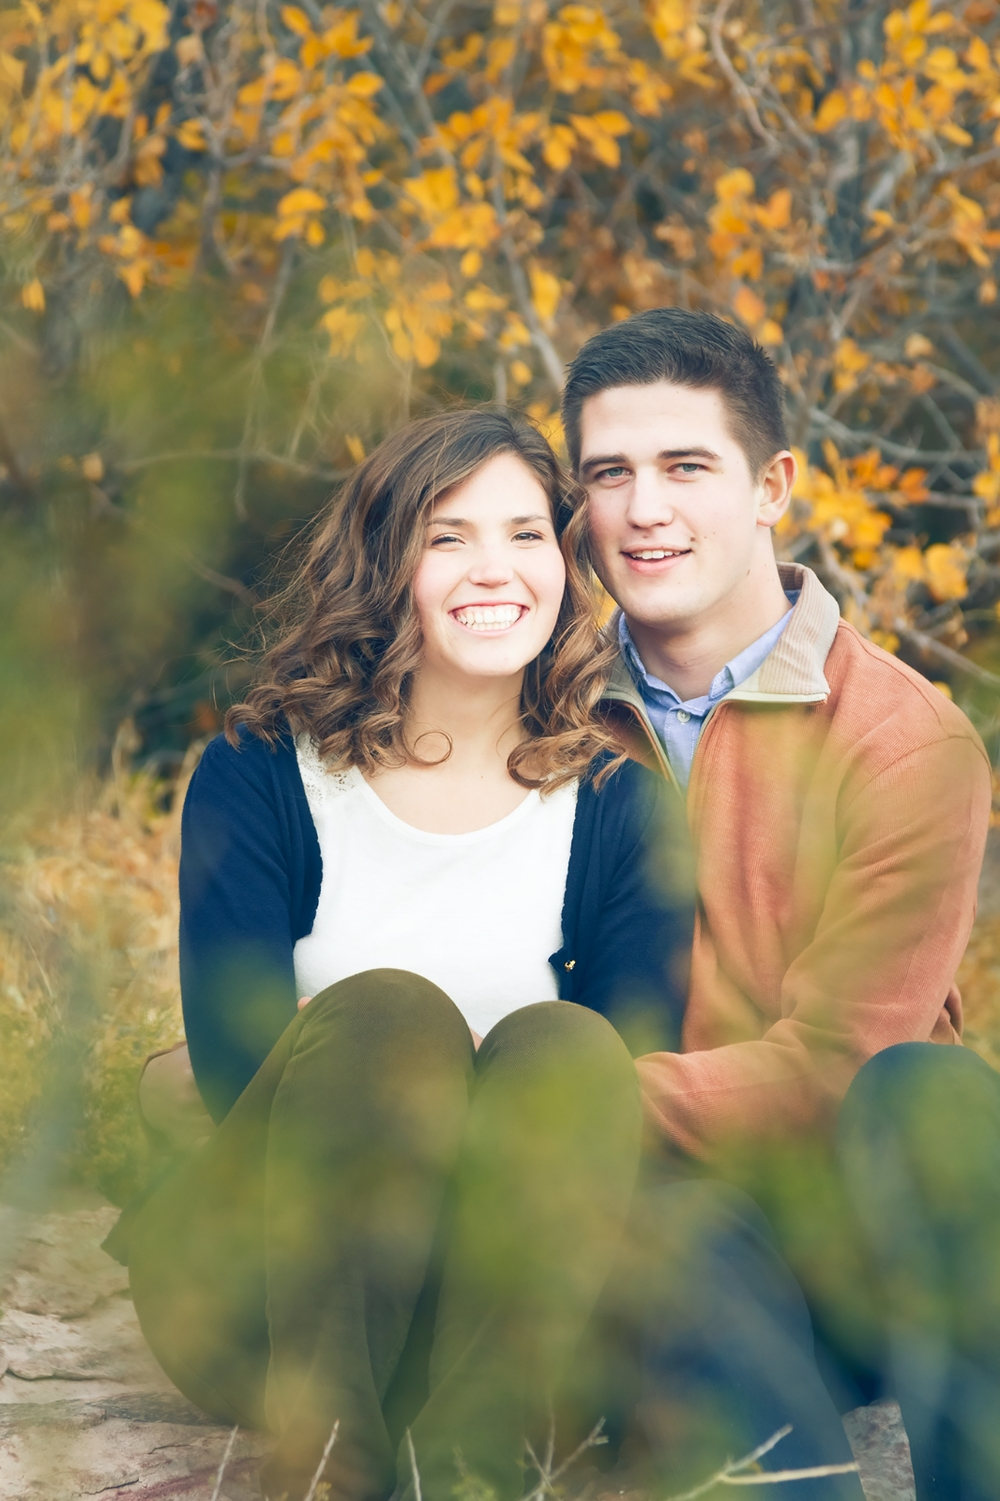 SteveandNancy_Engagements_0074_web.jpg